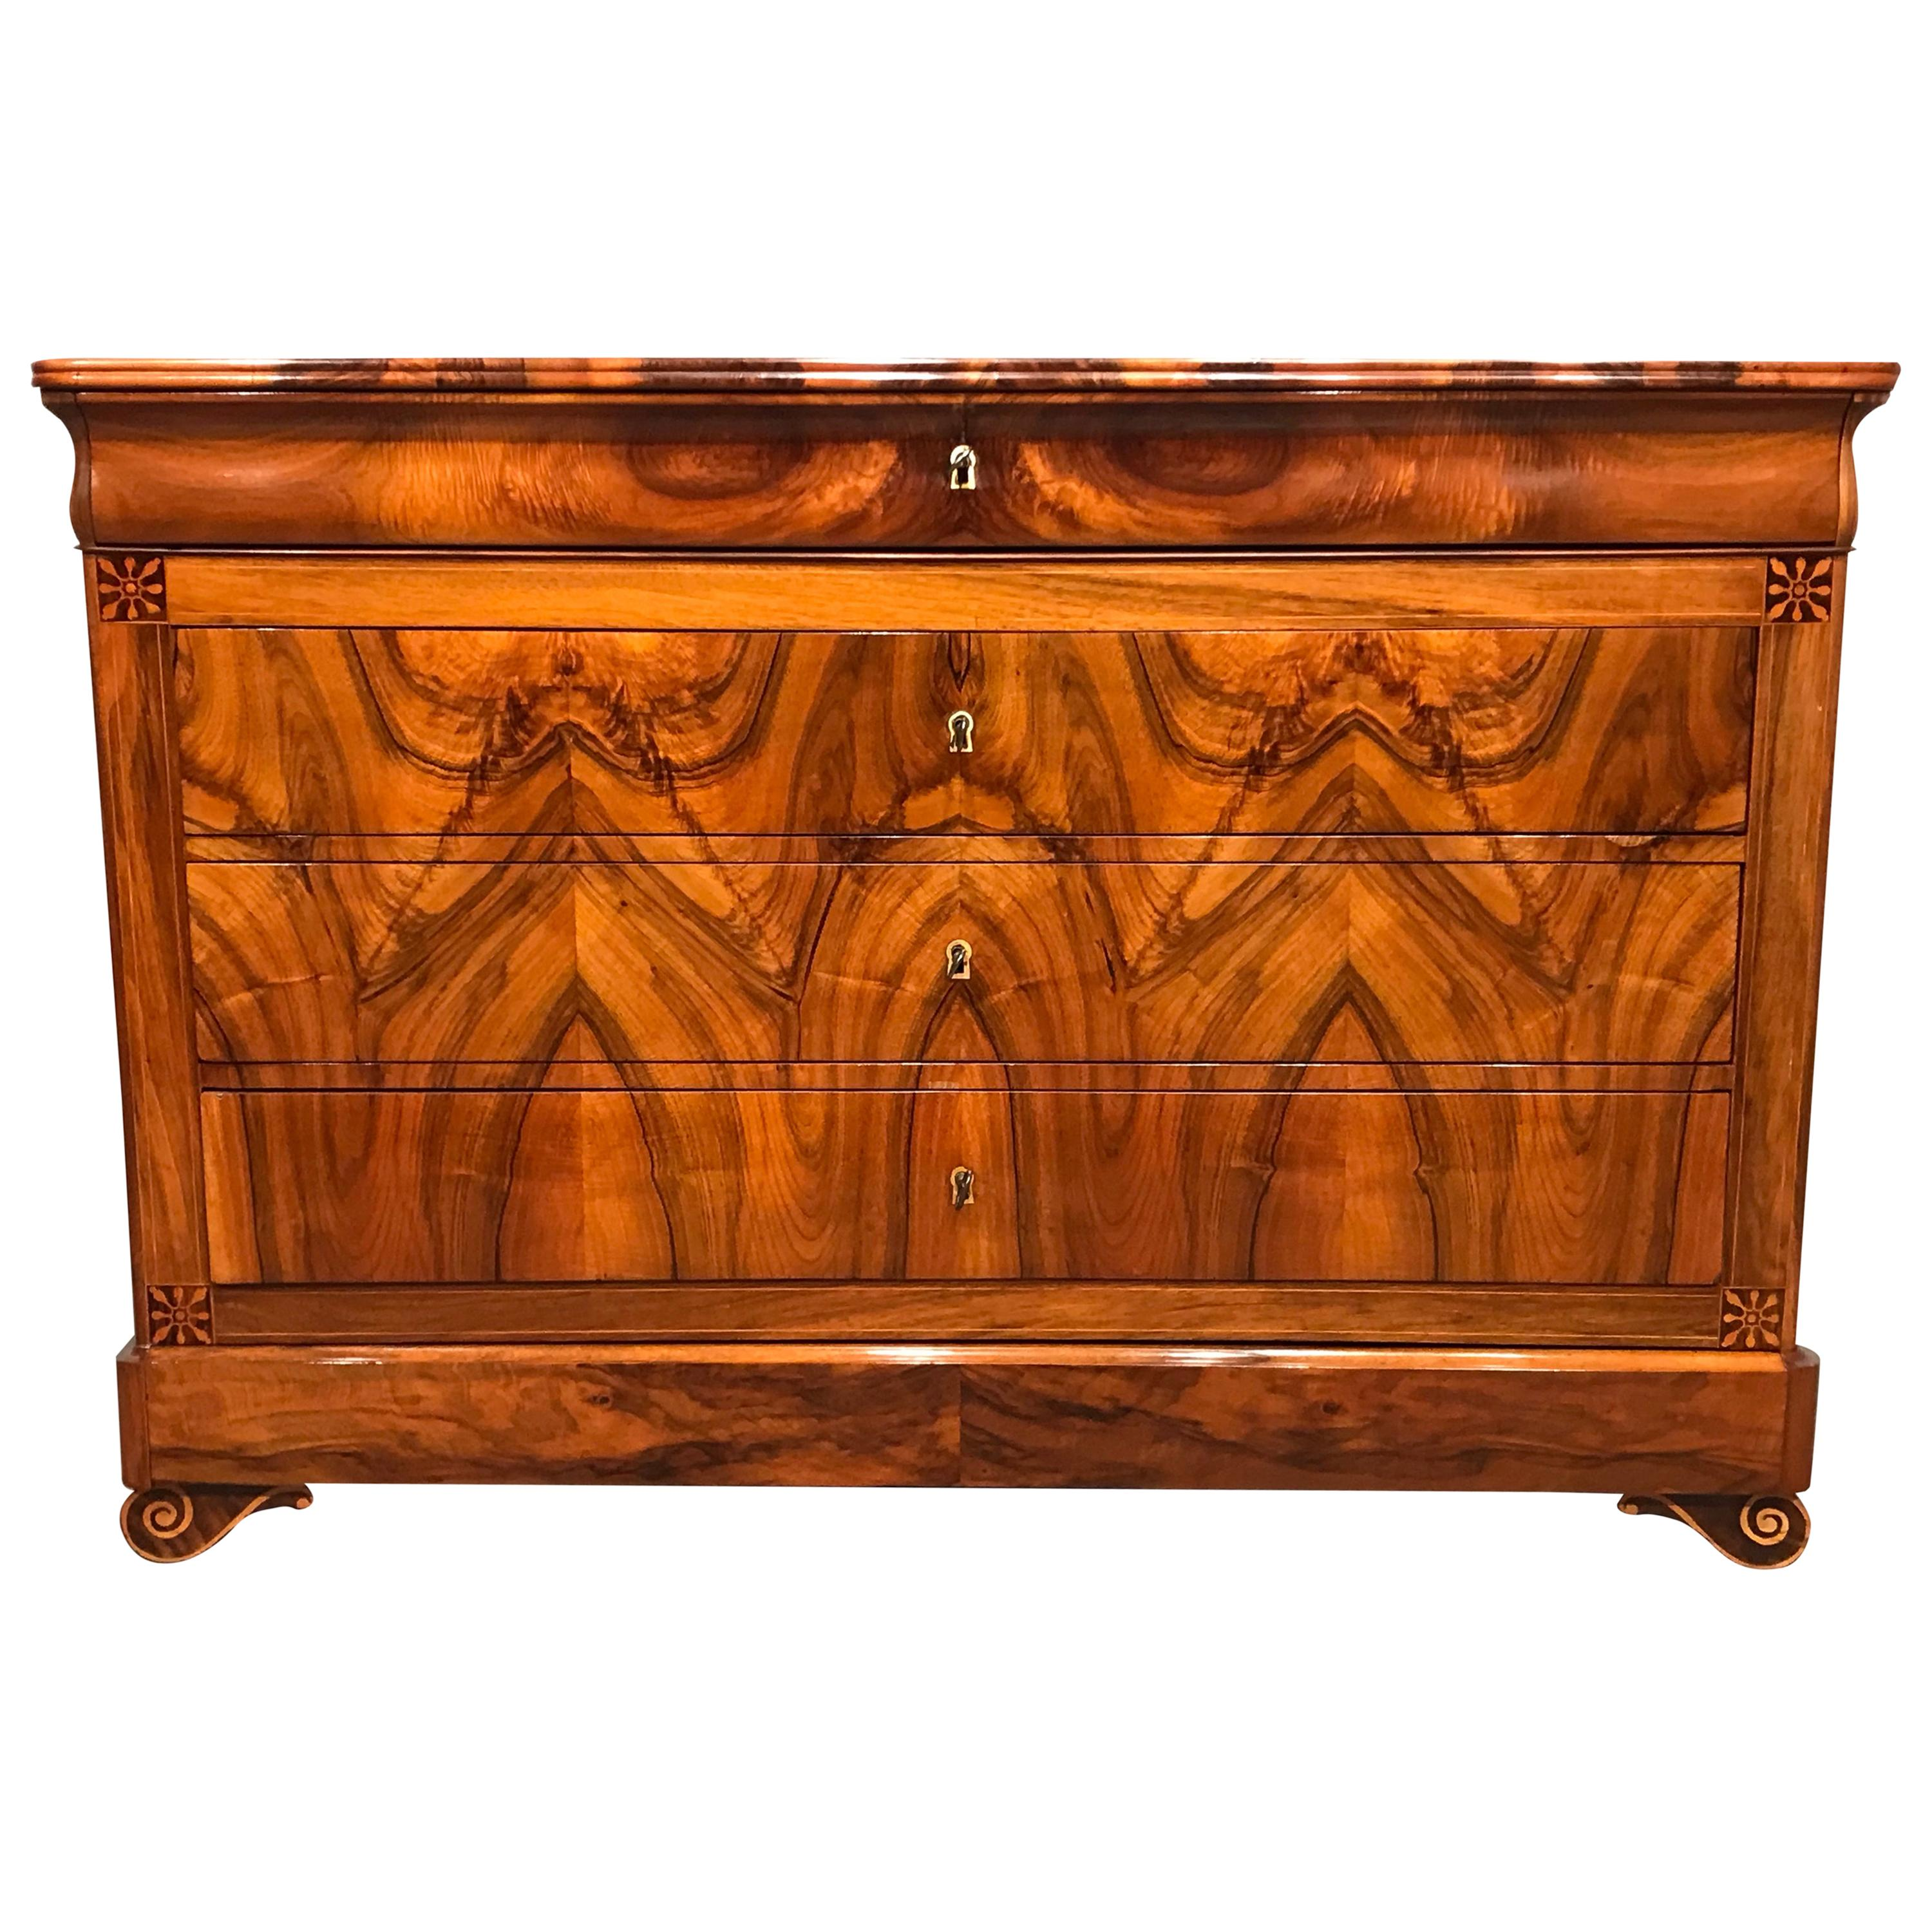 Louis Philippe Chest of Drawers, France 1840, Walnut